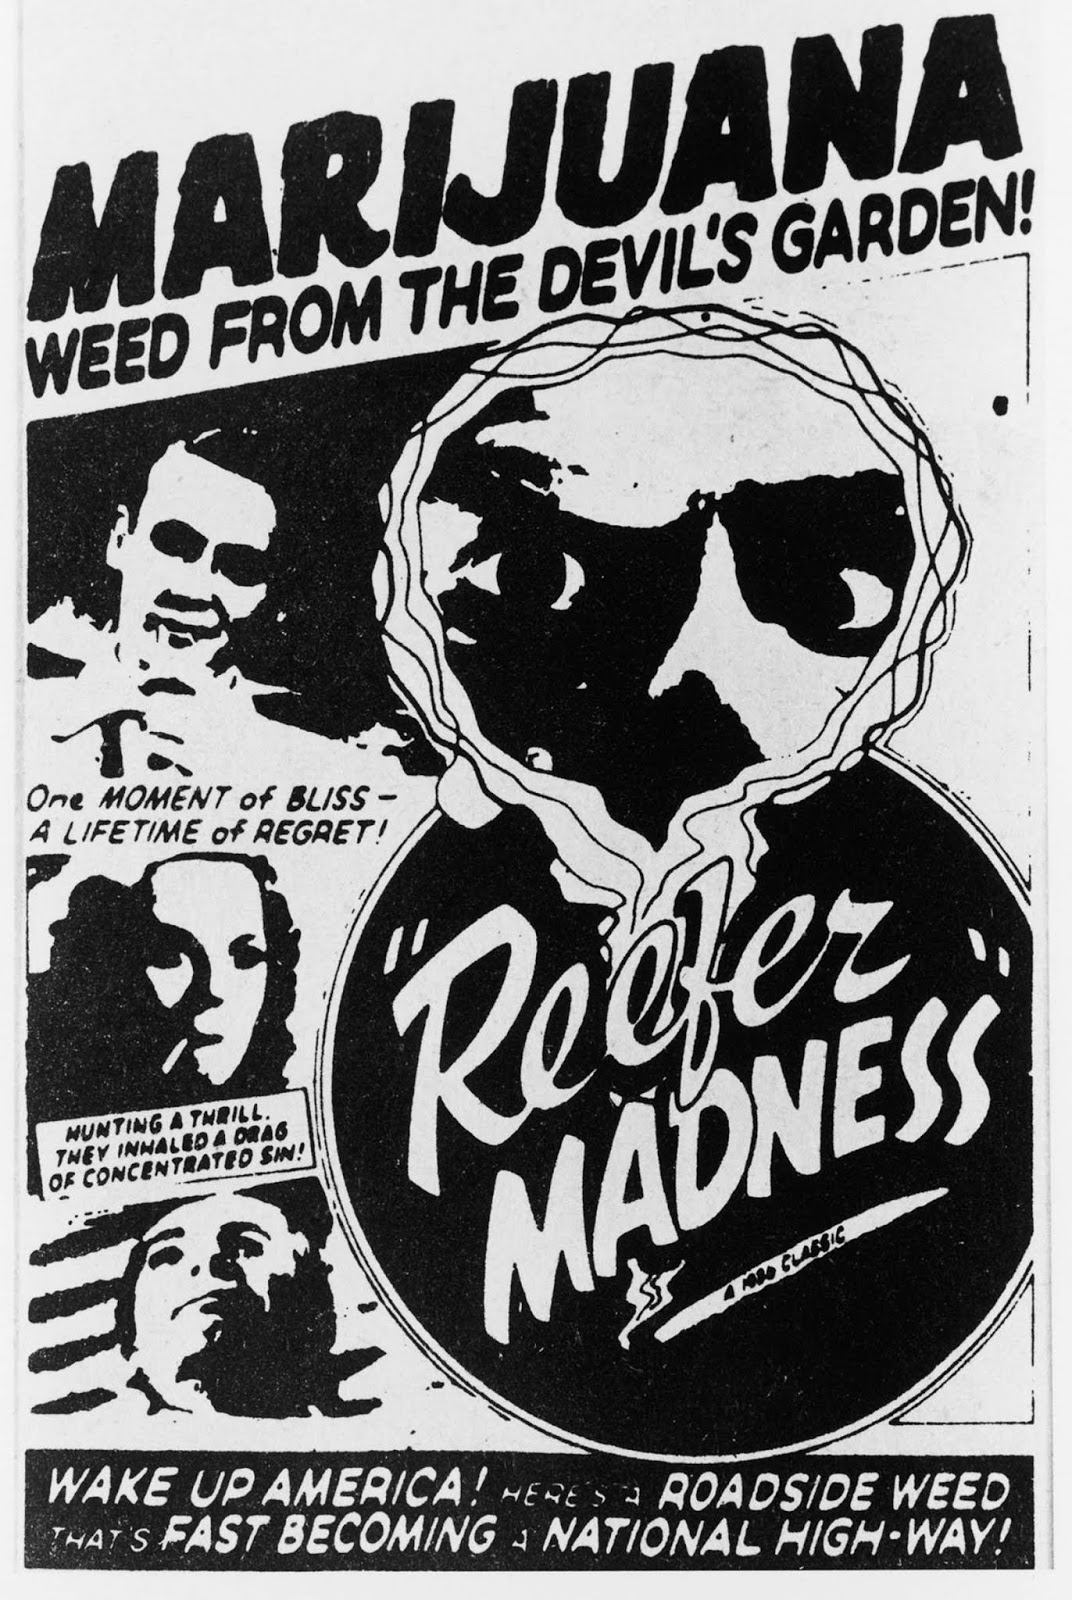 Marijuana: Weed from the Devil's garden! 1936.